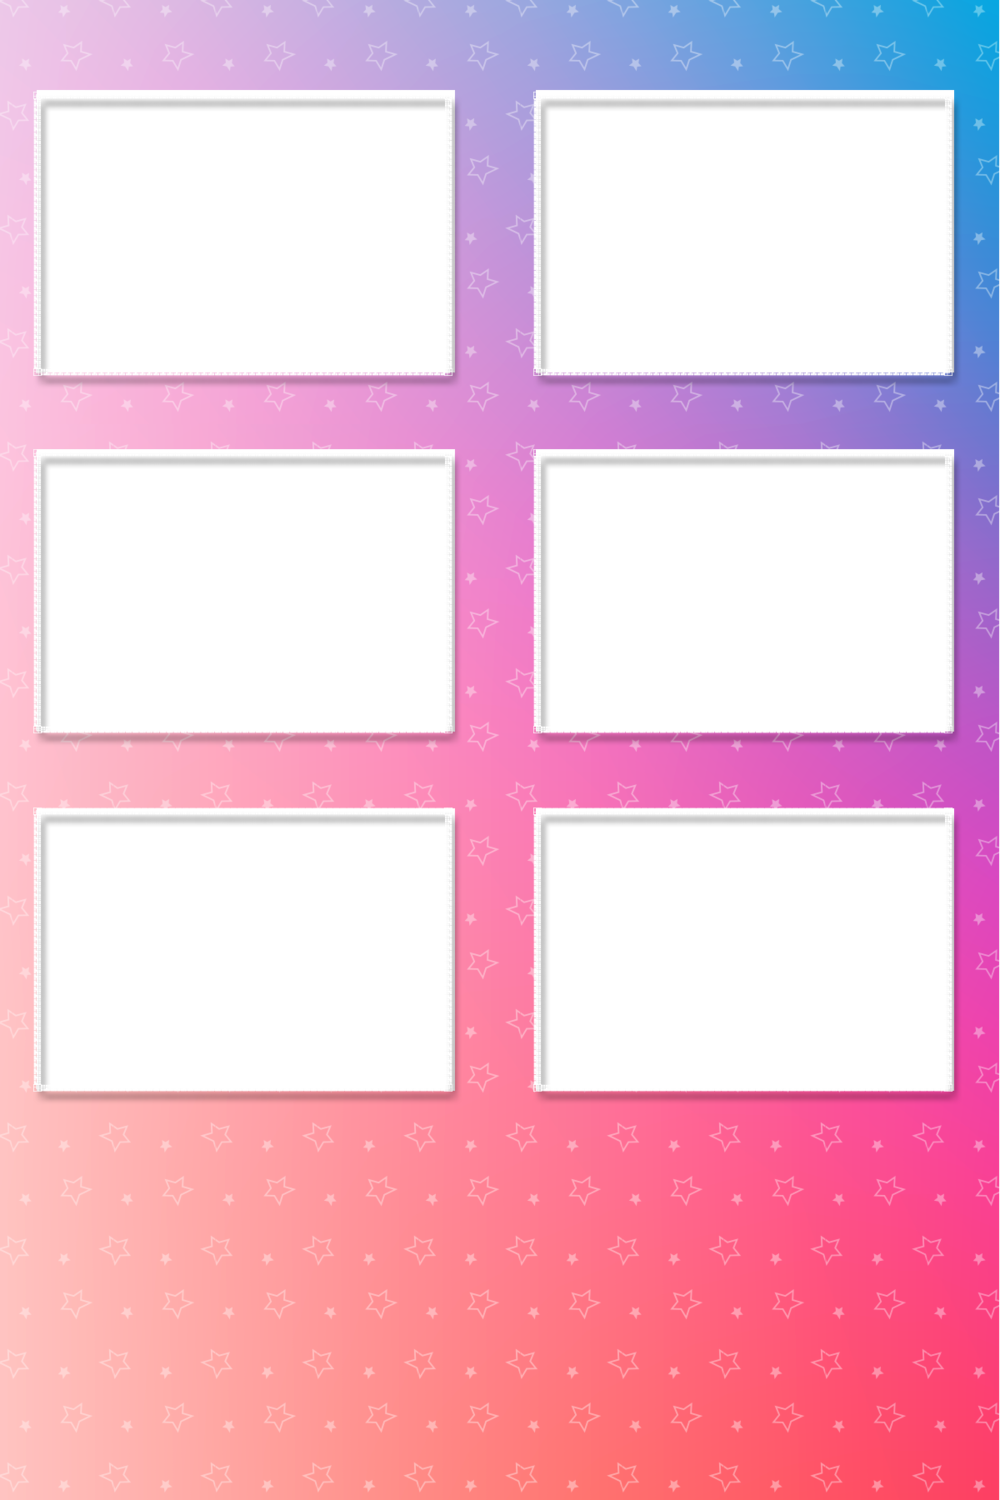 Strip_H3_Gradient.png